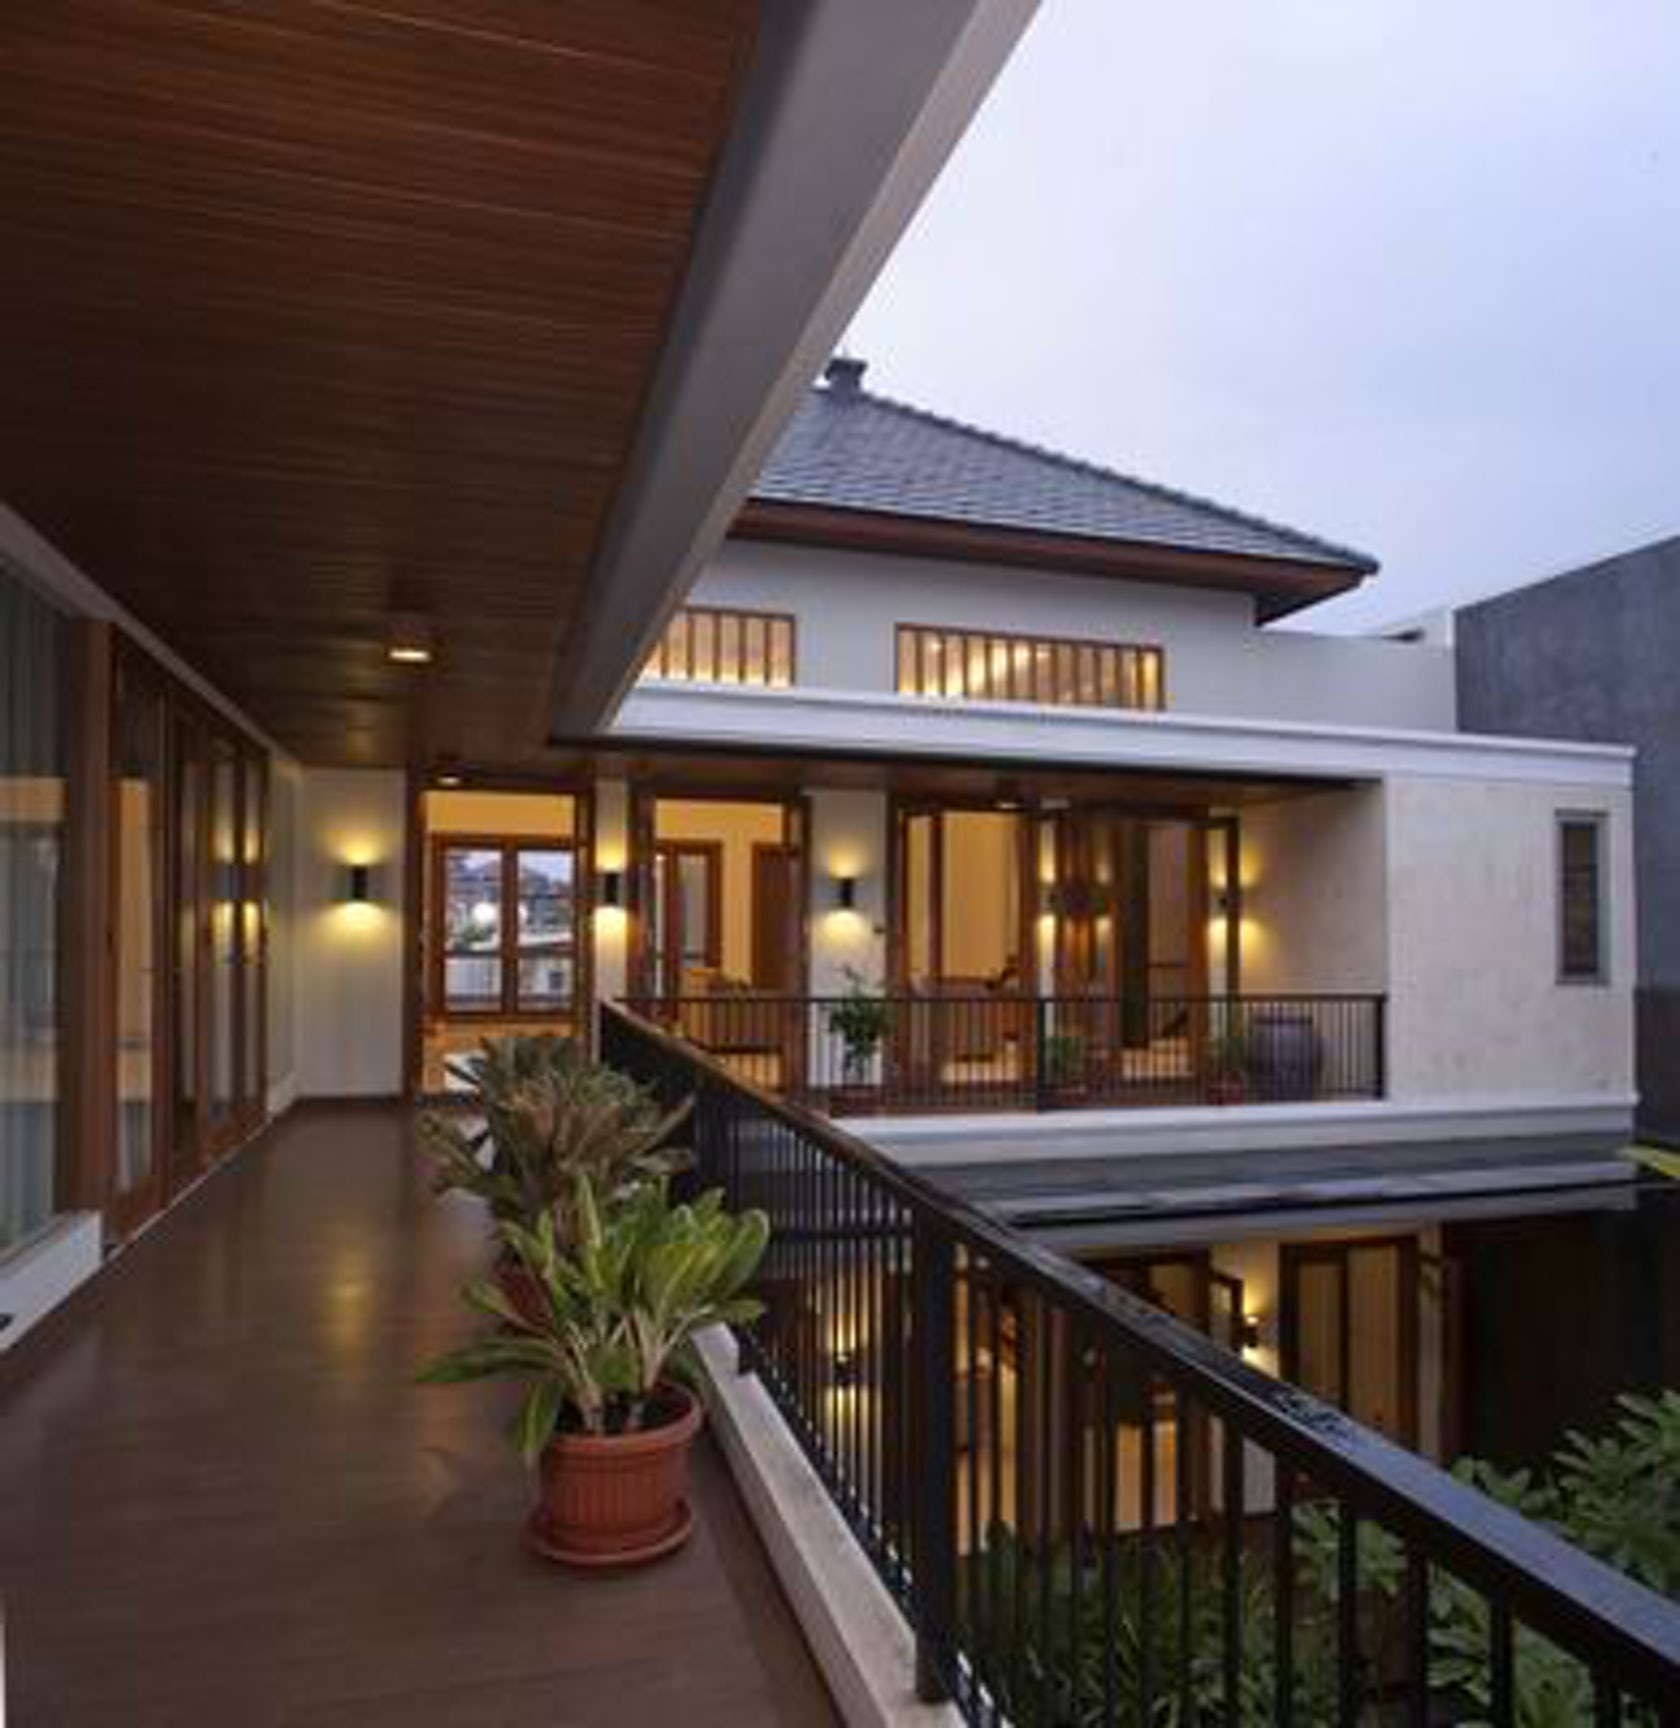 7a9e68b7 - Download Small Modern Bali House Design  Images